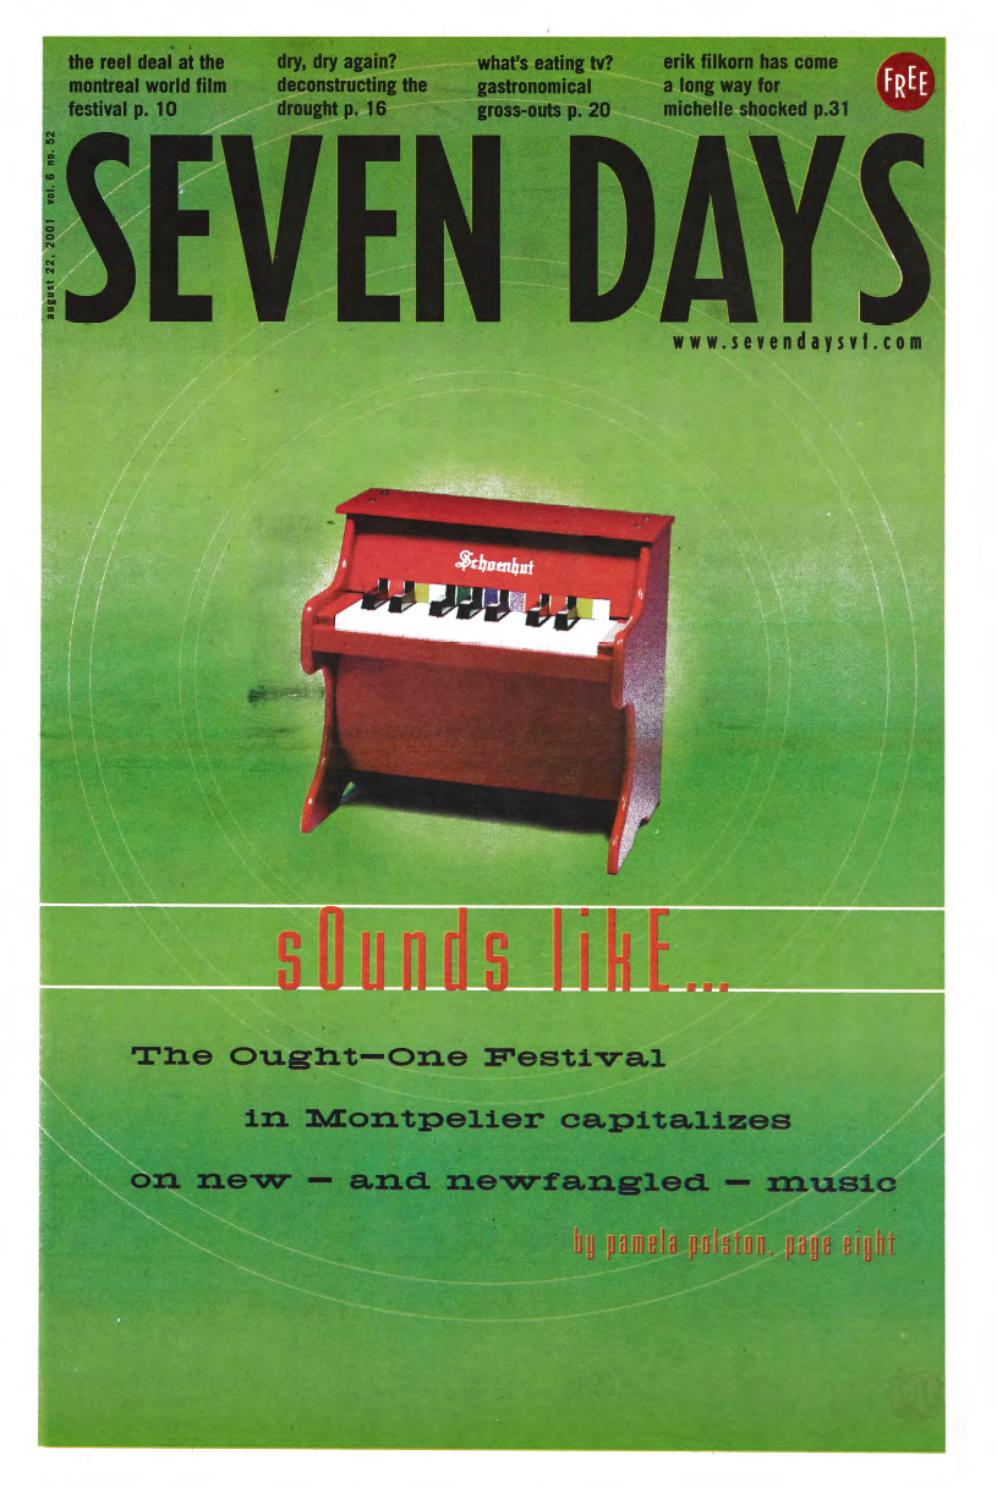 Seven Days August 22 2001 by